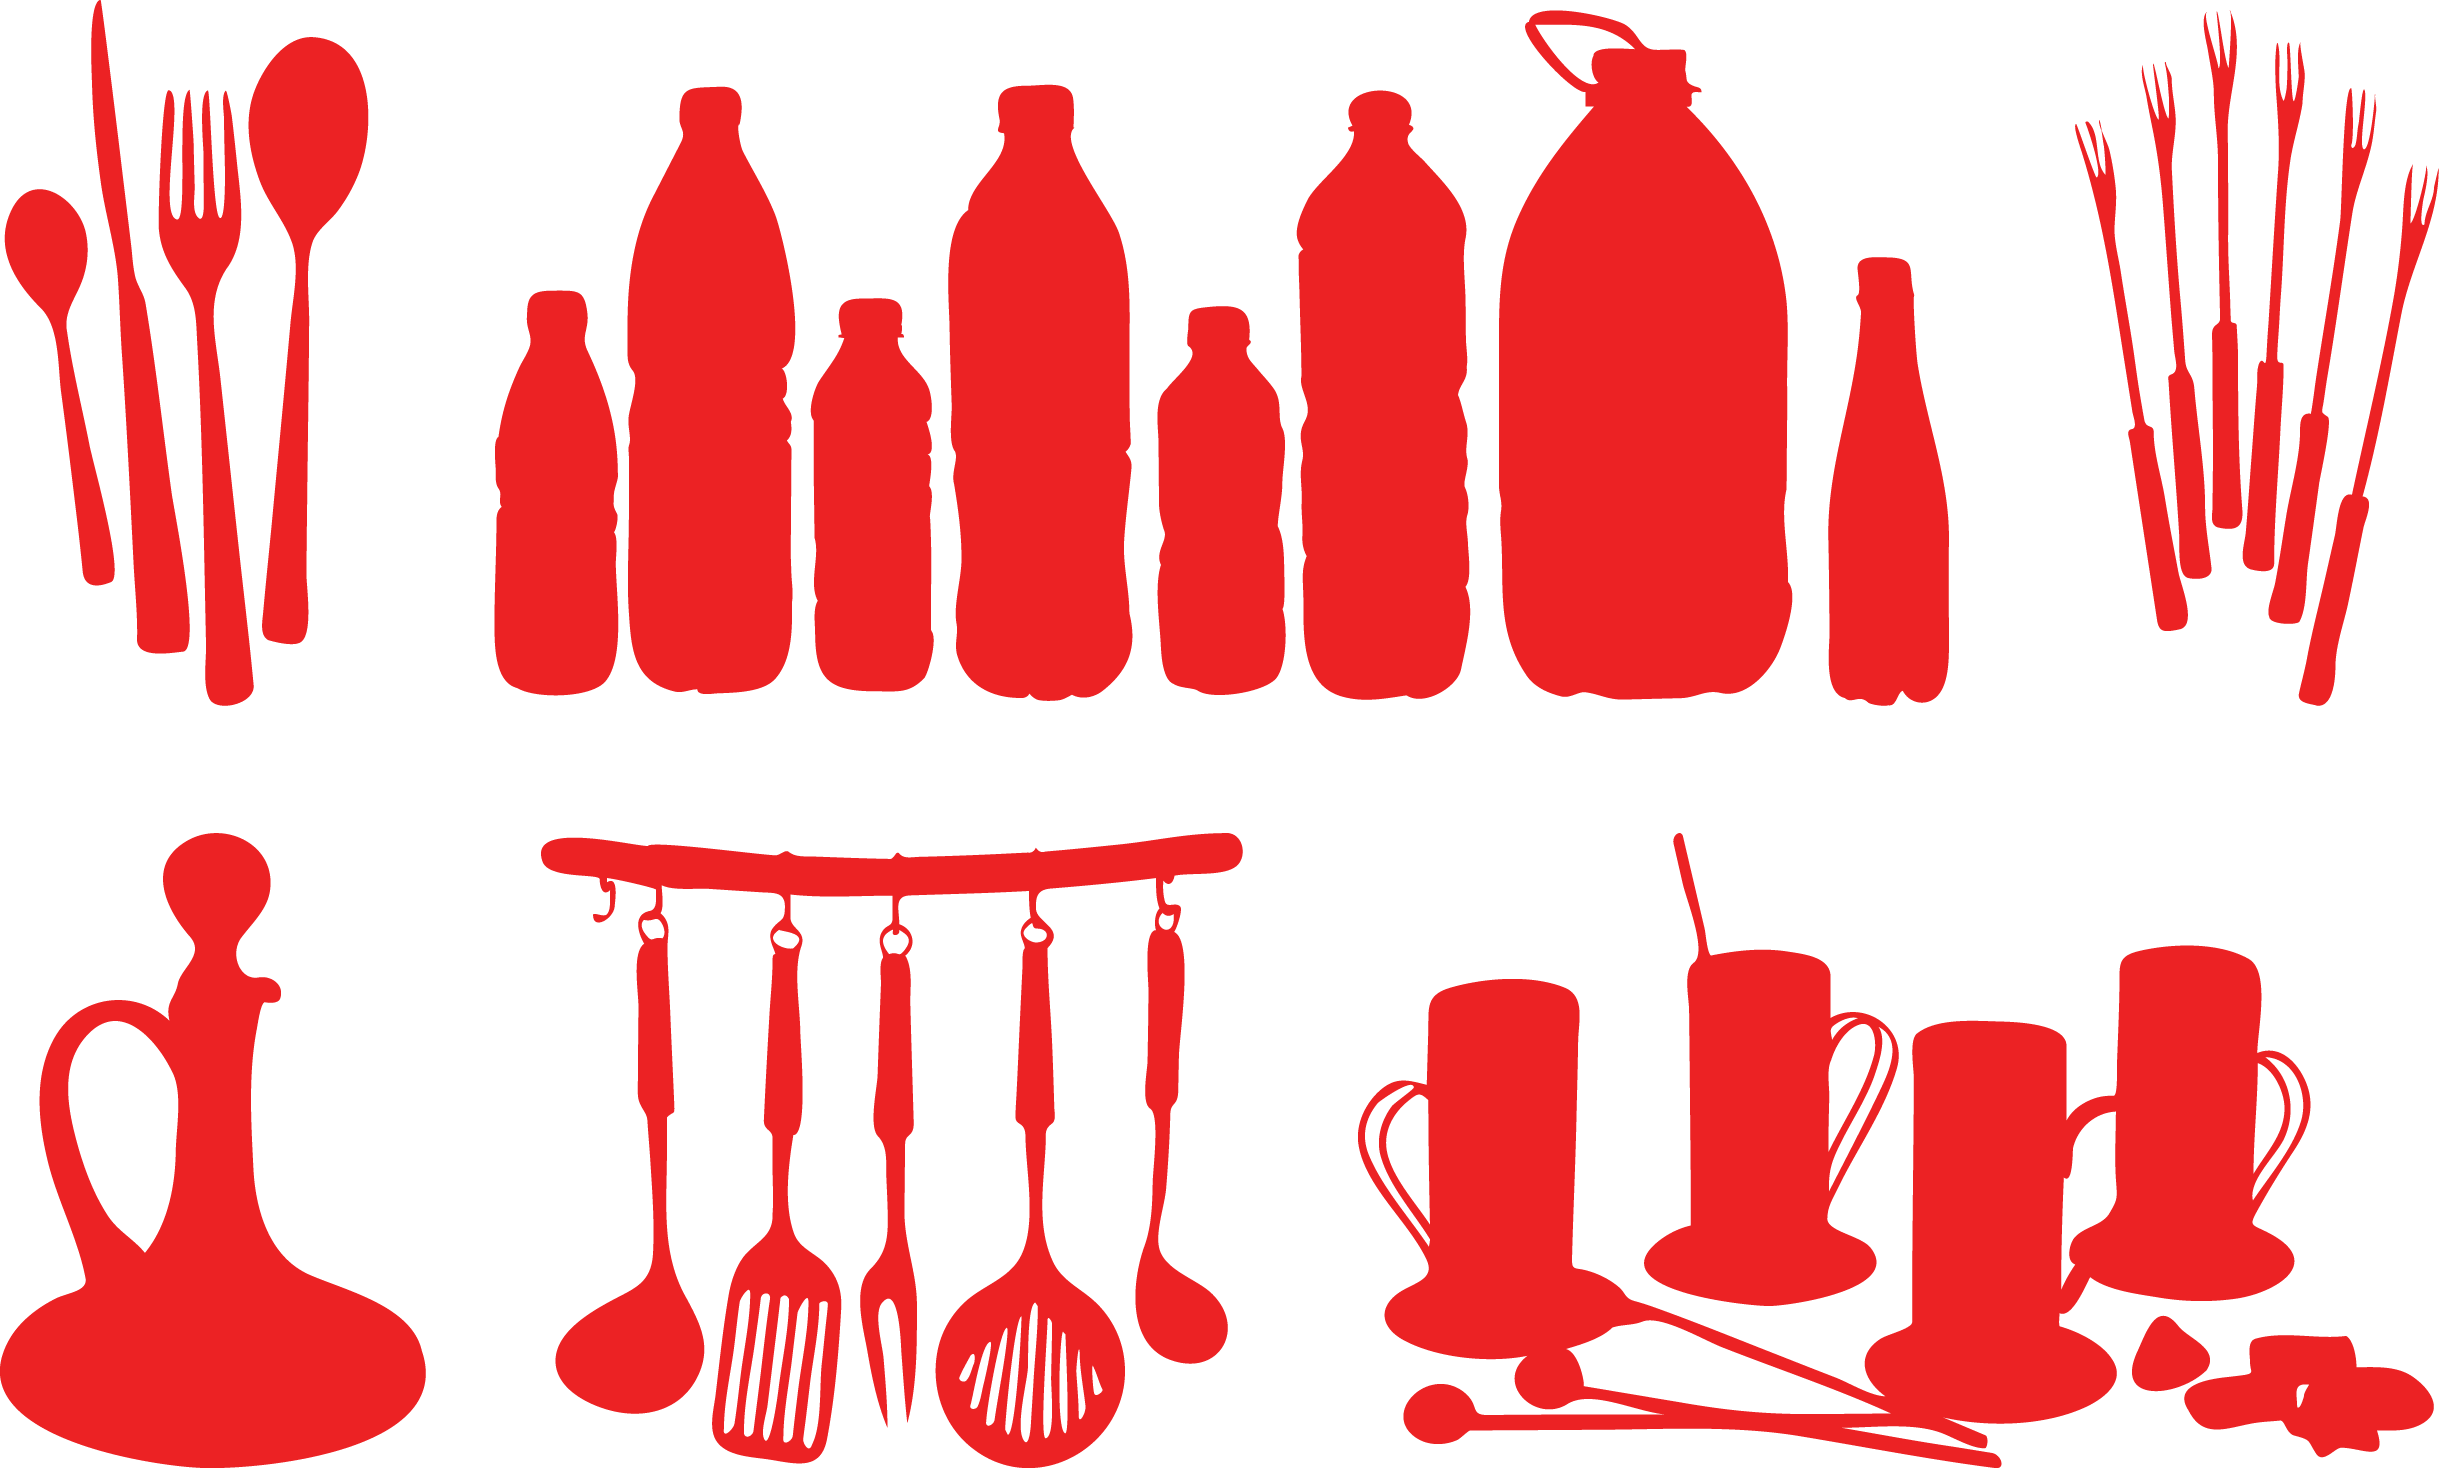 Kitchenware vector kitchen cutlery. Utensil silhouette at getdrawings